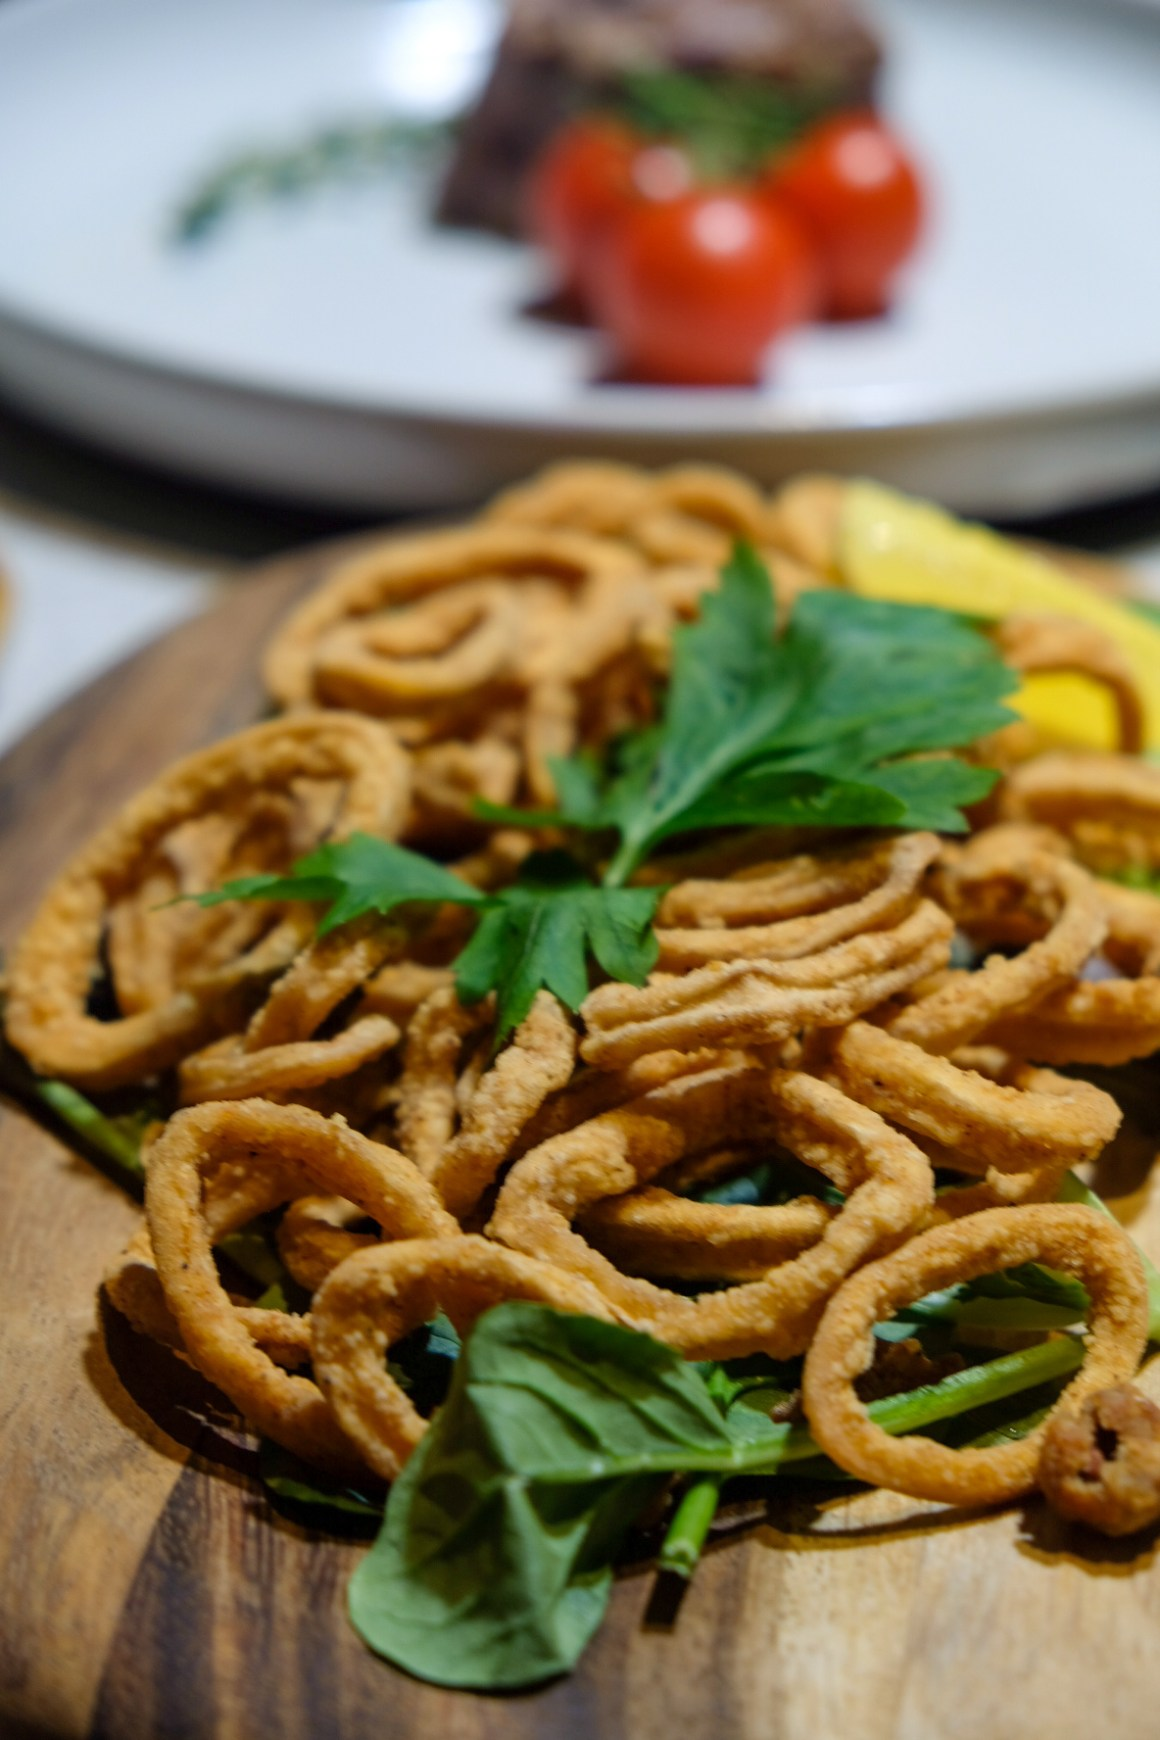 Rumours Bar & Grill @ Jewel Changi, Second Outlet - Calamari ($8.80)